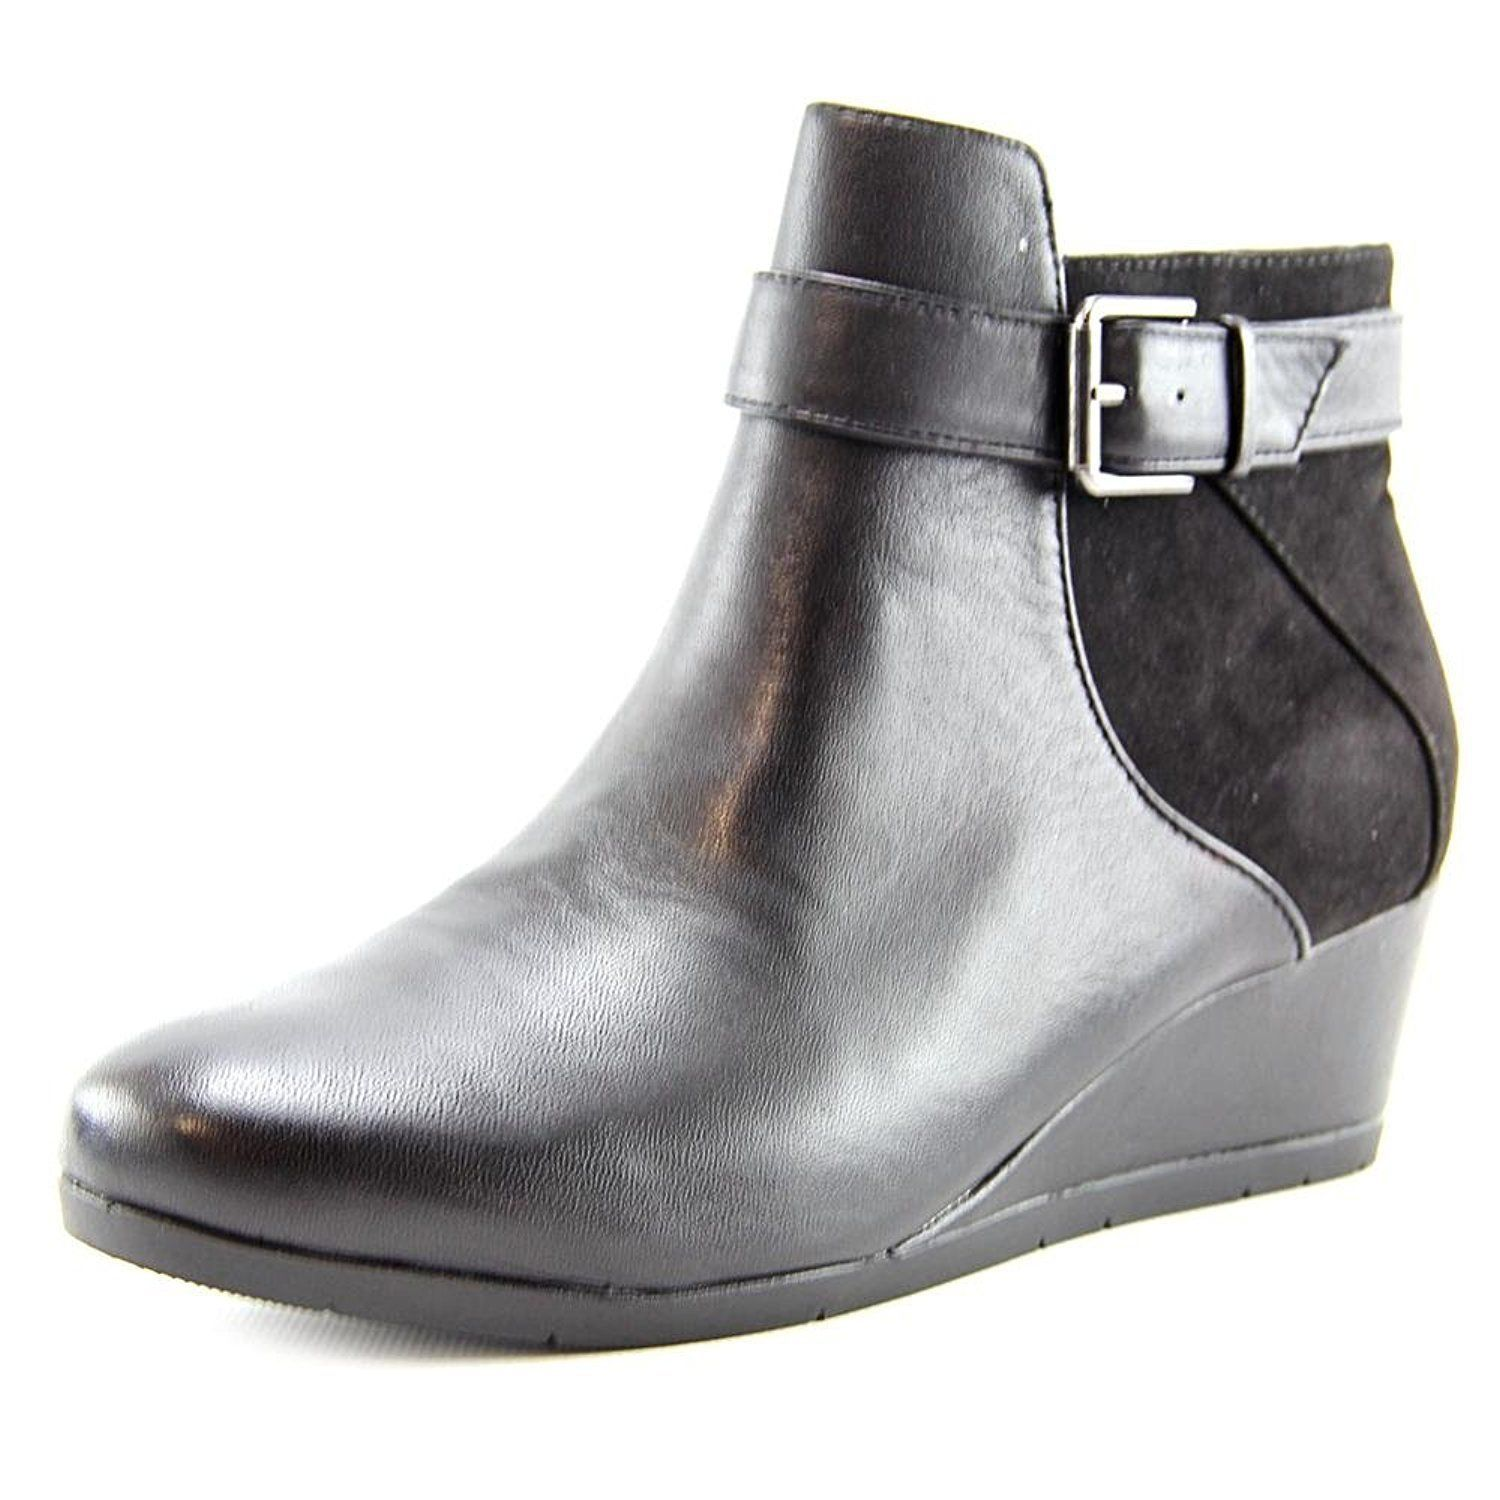 Womens Chelseaa Leather Closed Toe Ankle Fashion Boots